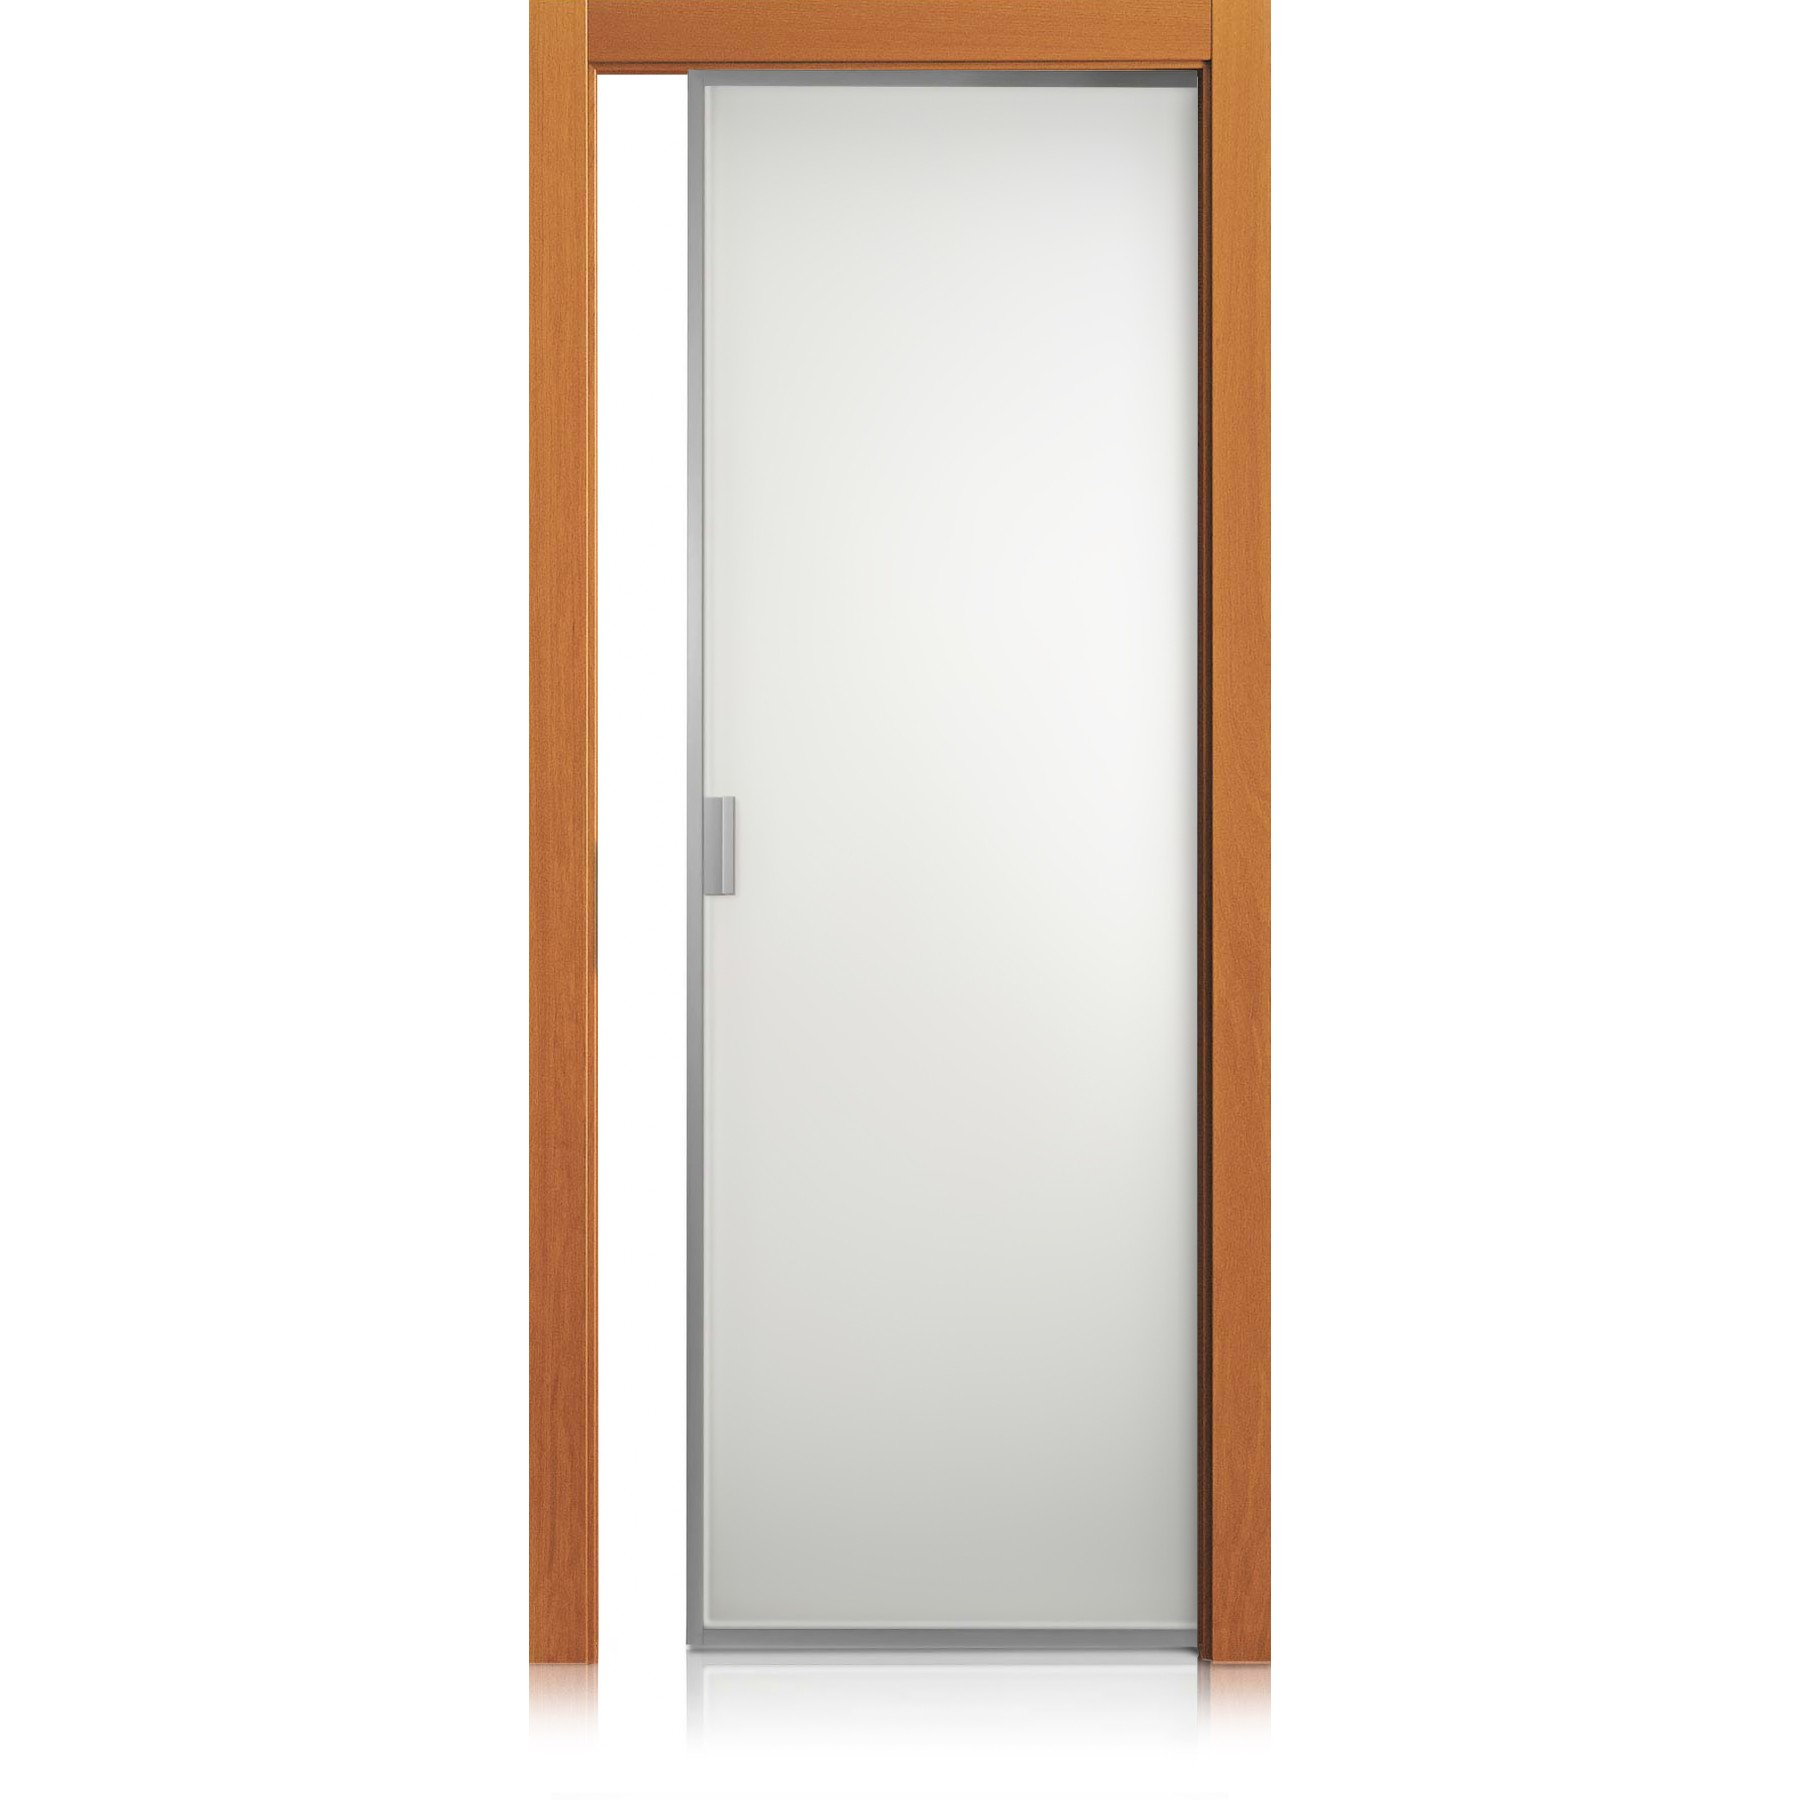 Cristal Frame blond door